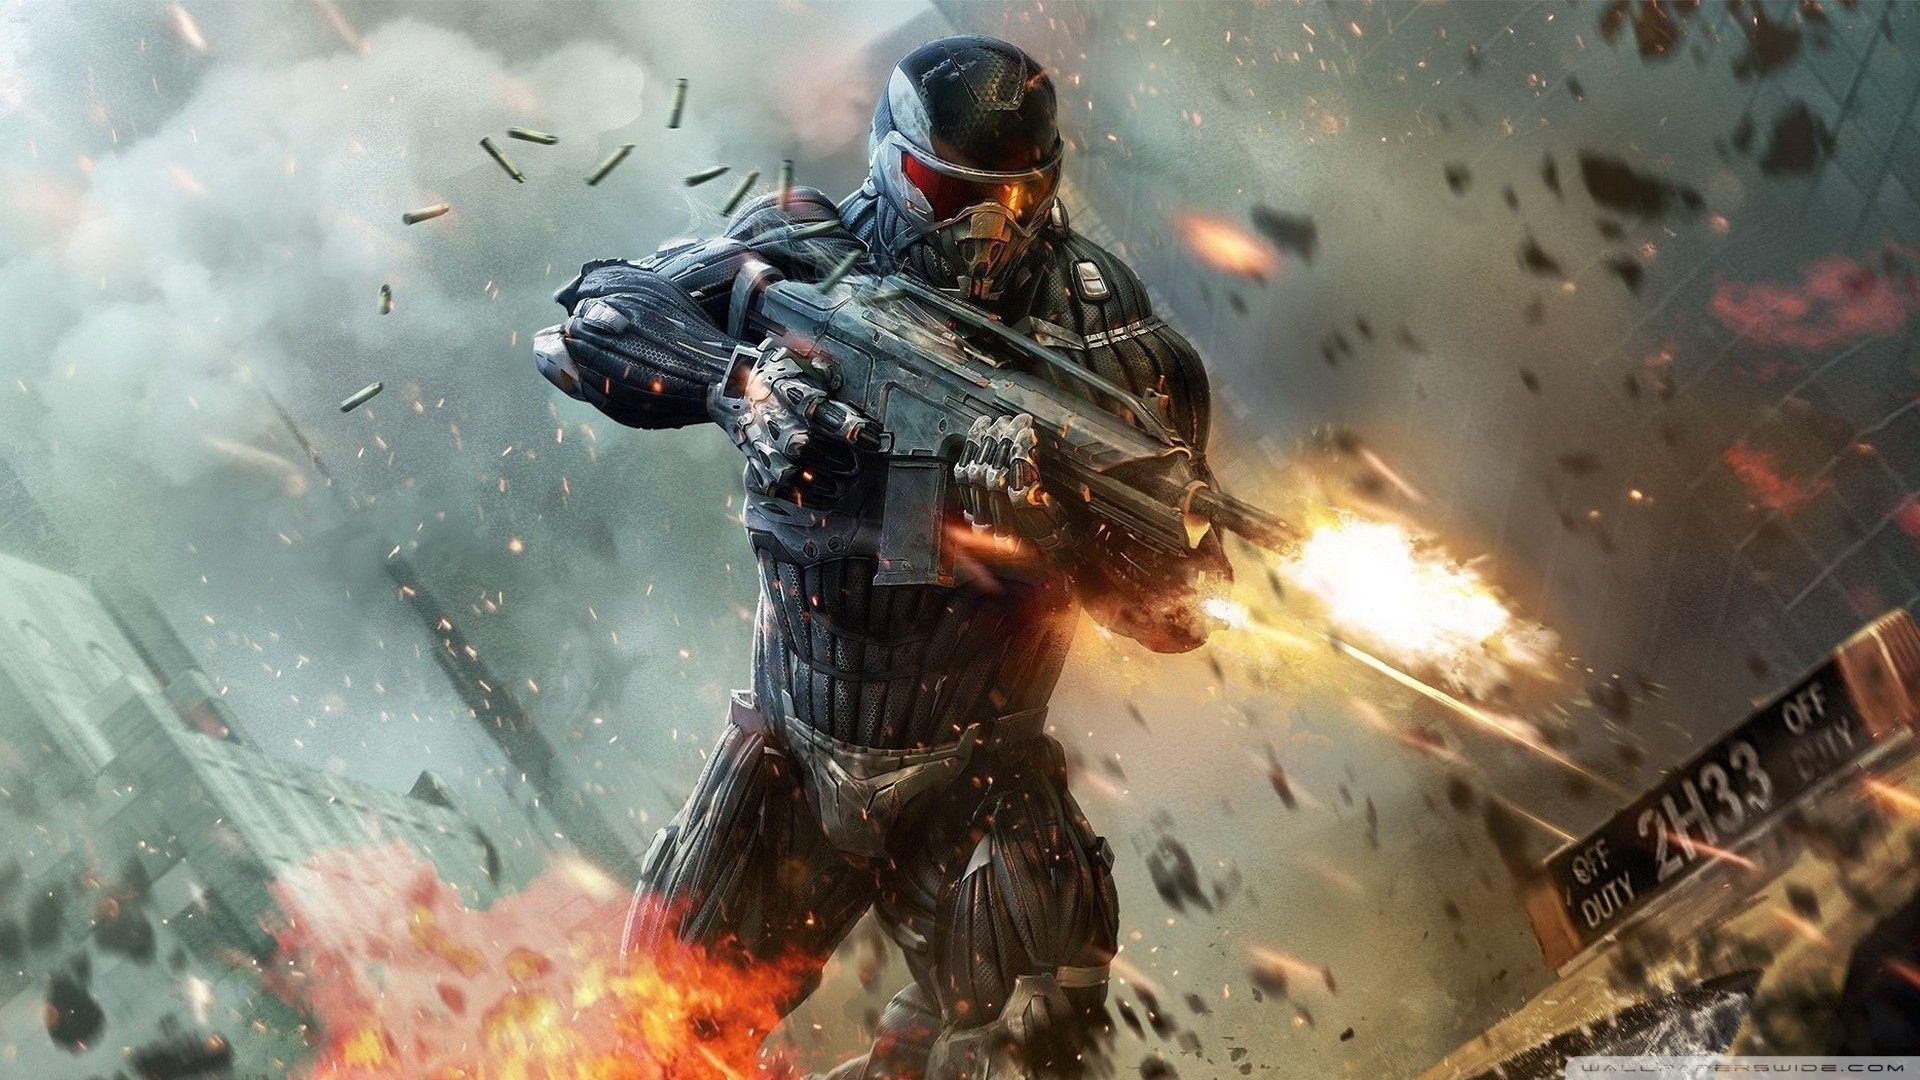 10 most popular cool gaming wallpapers hd 1920x1080 full hd 1080p